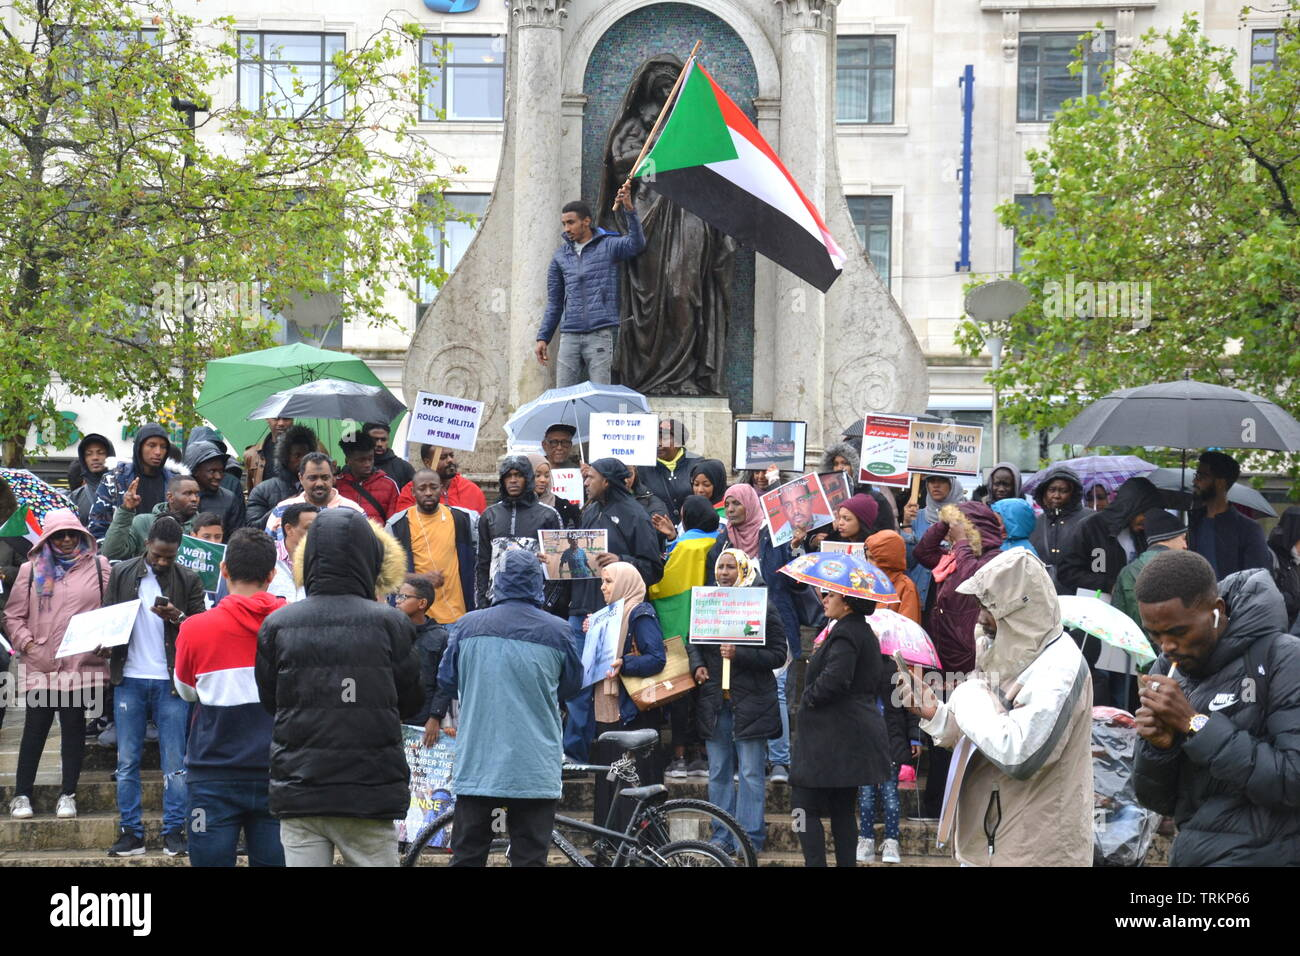 june-8-2019-supporters-of-the-sudanese-uprising-campaign-in-piccadilly-gardens-city-centre-manchester-uk-since-december-2018-people-in-sudan-and-elsewhere-have-called-for-political-reform-and-a-civilian-led-government-in-sudan-in-april-the-military-removed-president-omar-al-bashir-from-power-TRKP66.jpg